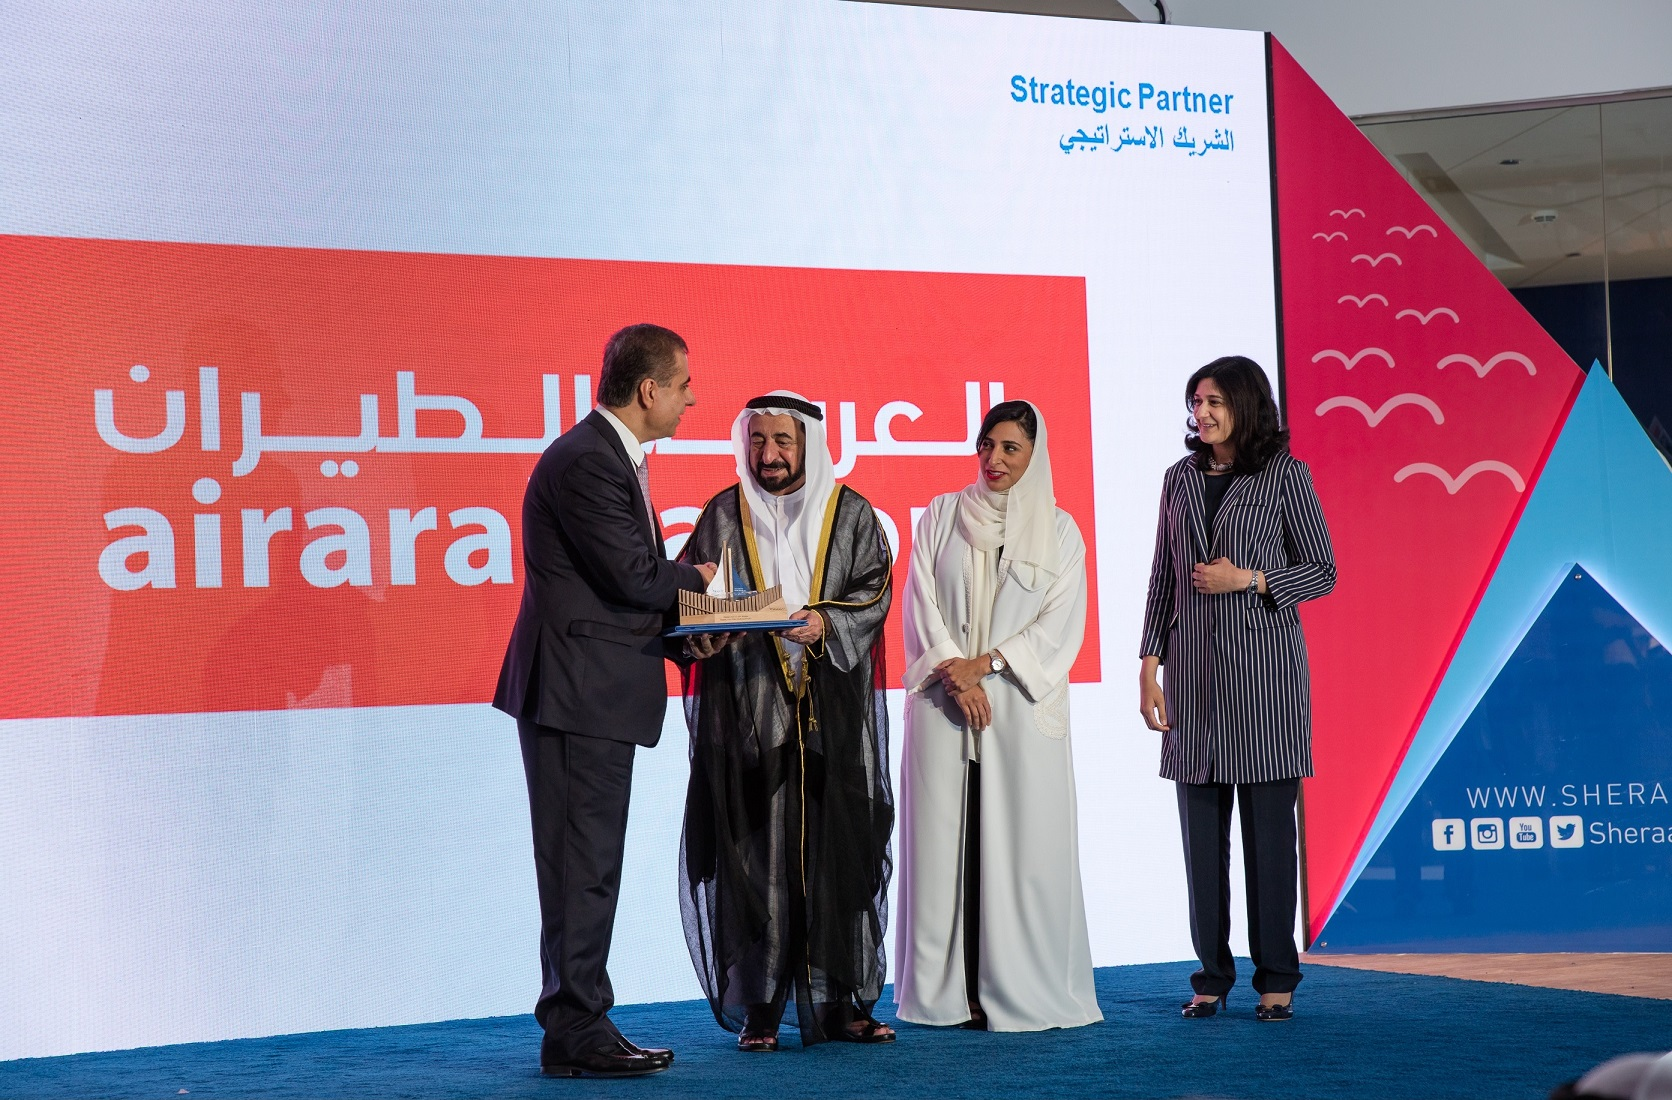 Sheraa and Air Arabia Collaborate to Launch 'Travel and  Tourism' Track